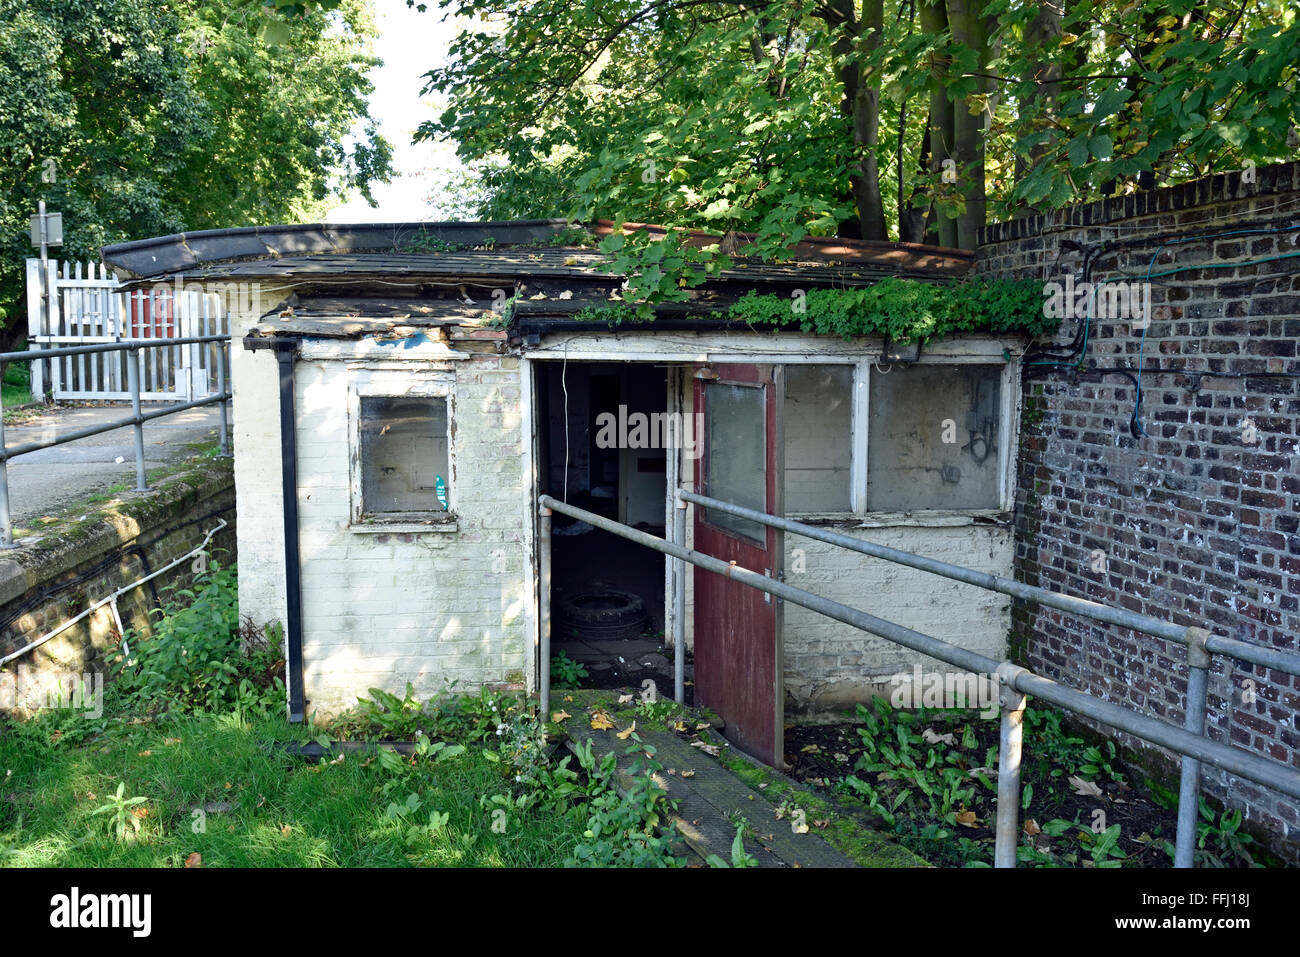 Small derelict industrial single story building, Walthamstow Reservoirs - Stock Image